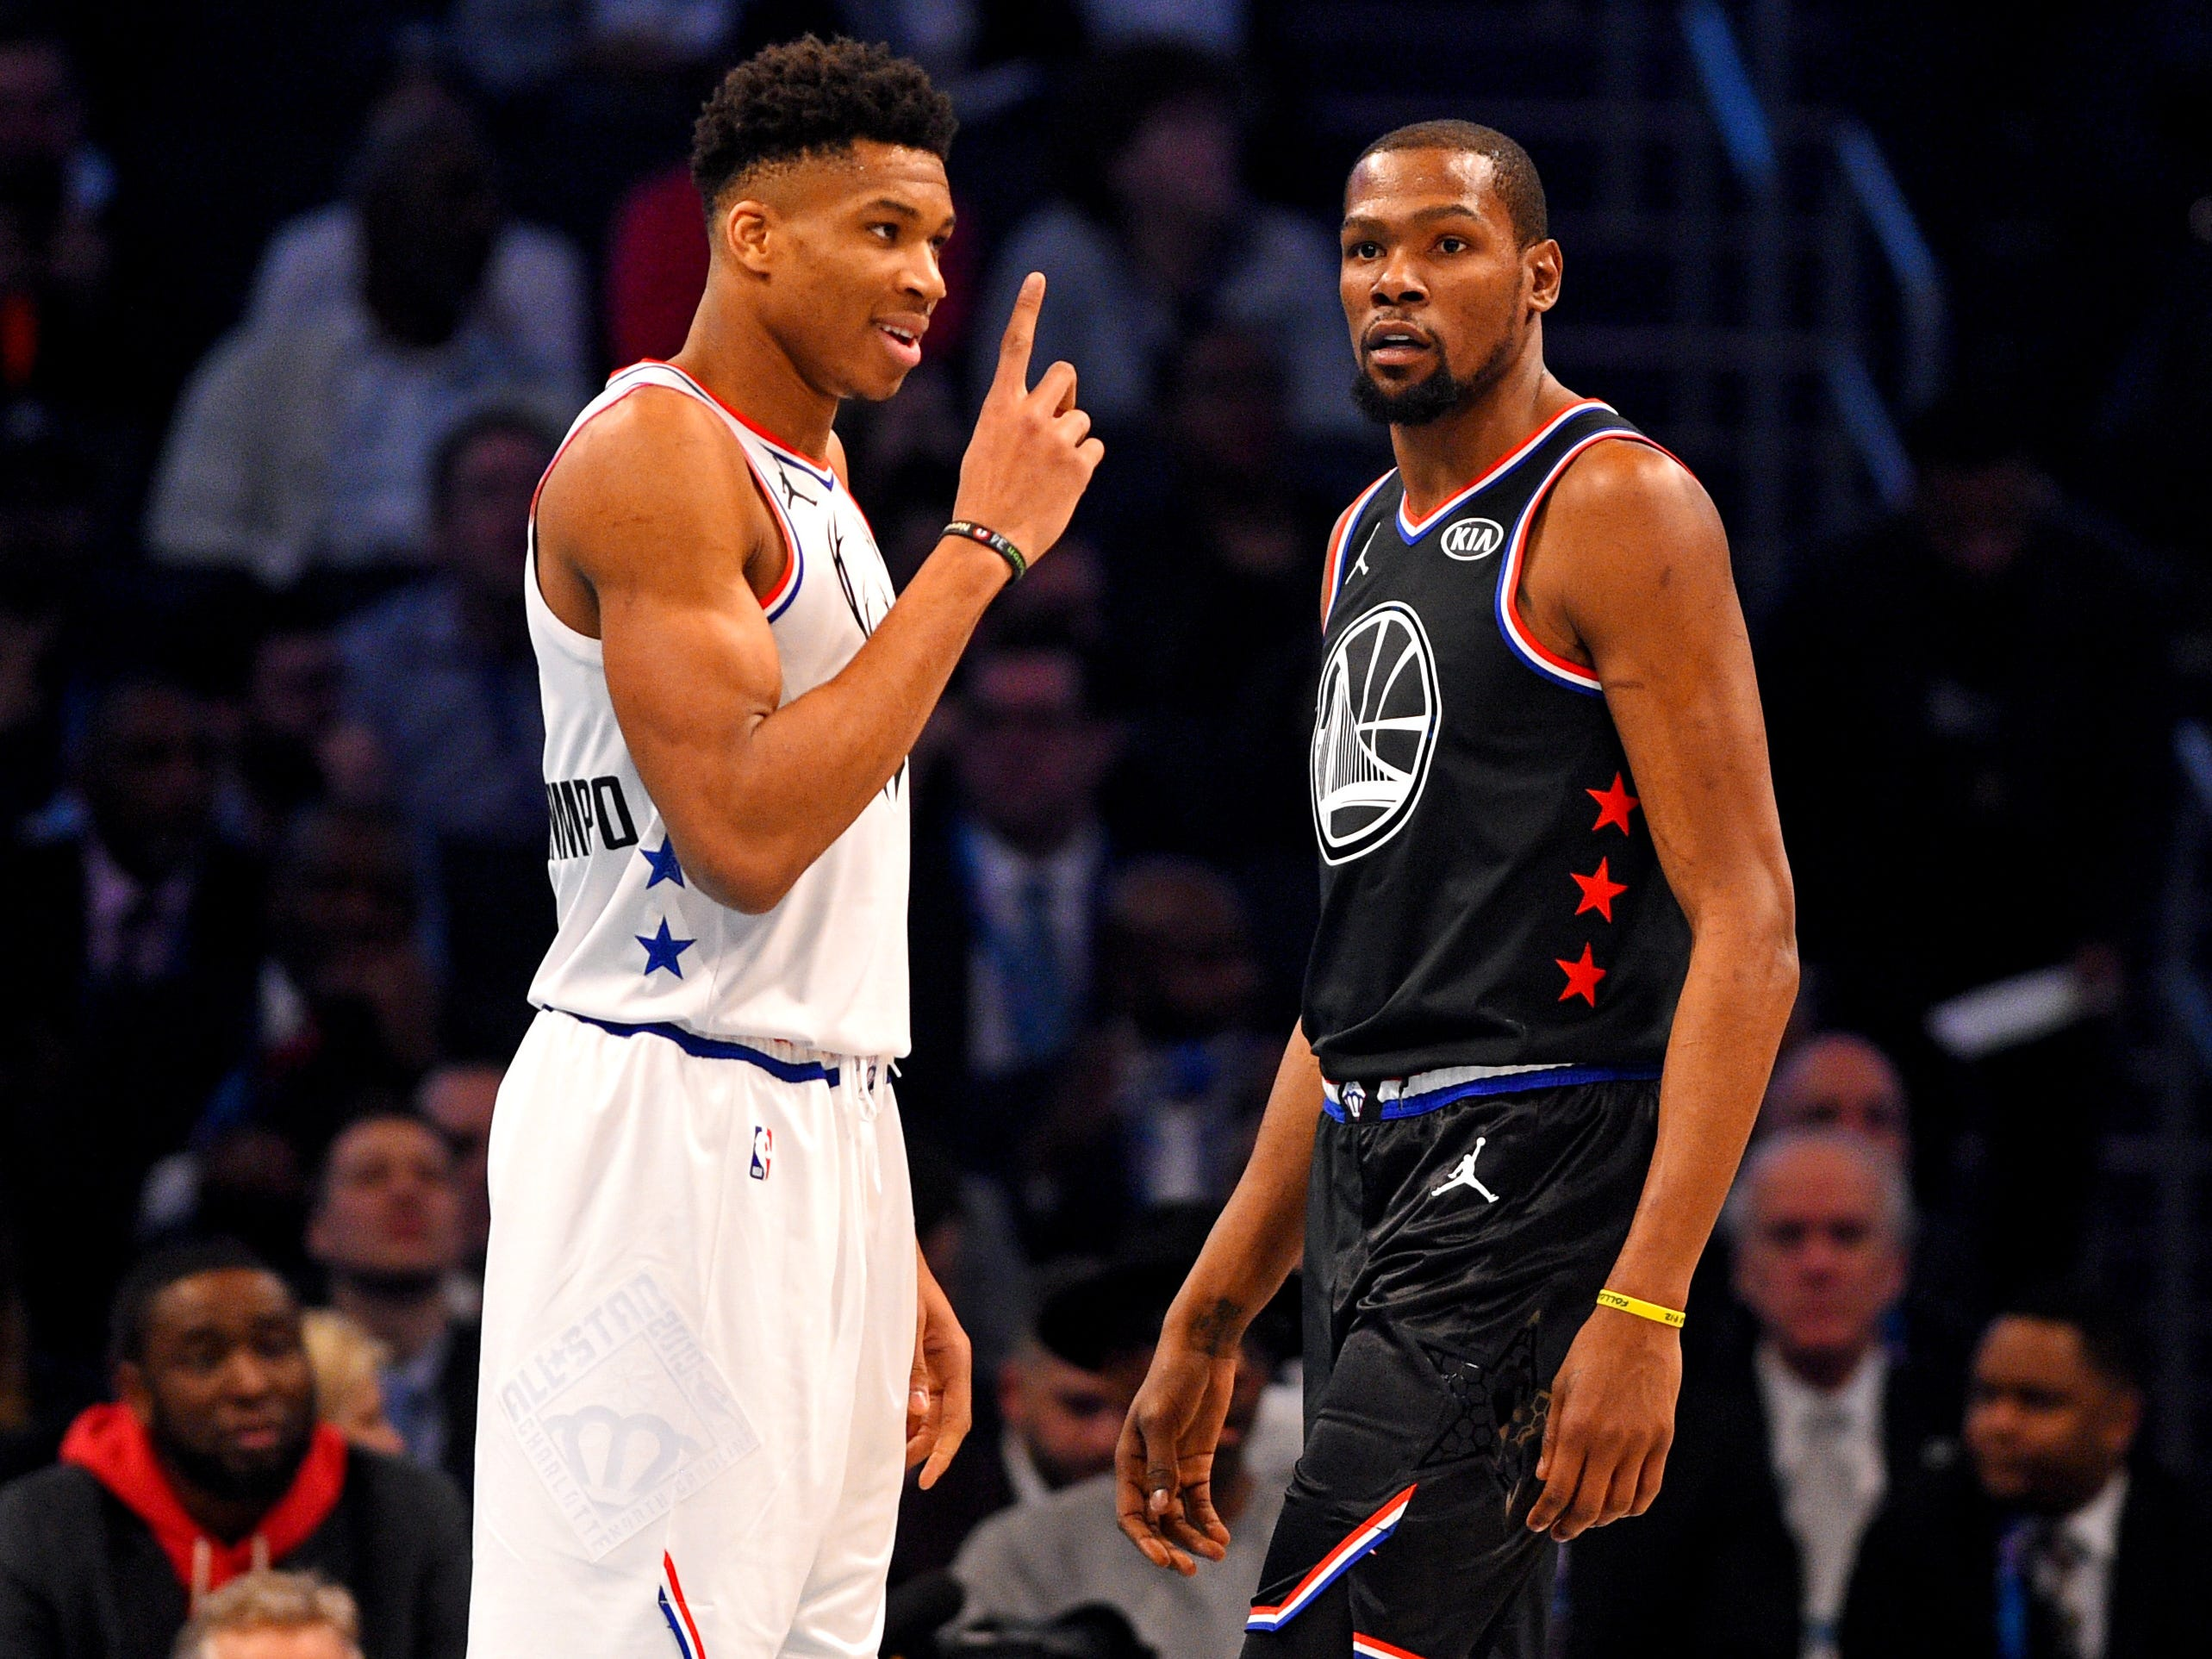 Giannis Antetokounmpo has a word NBA All-Star Game MVP Kevin Durant.